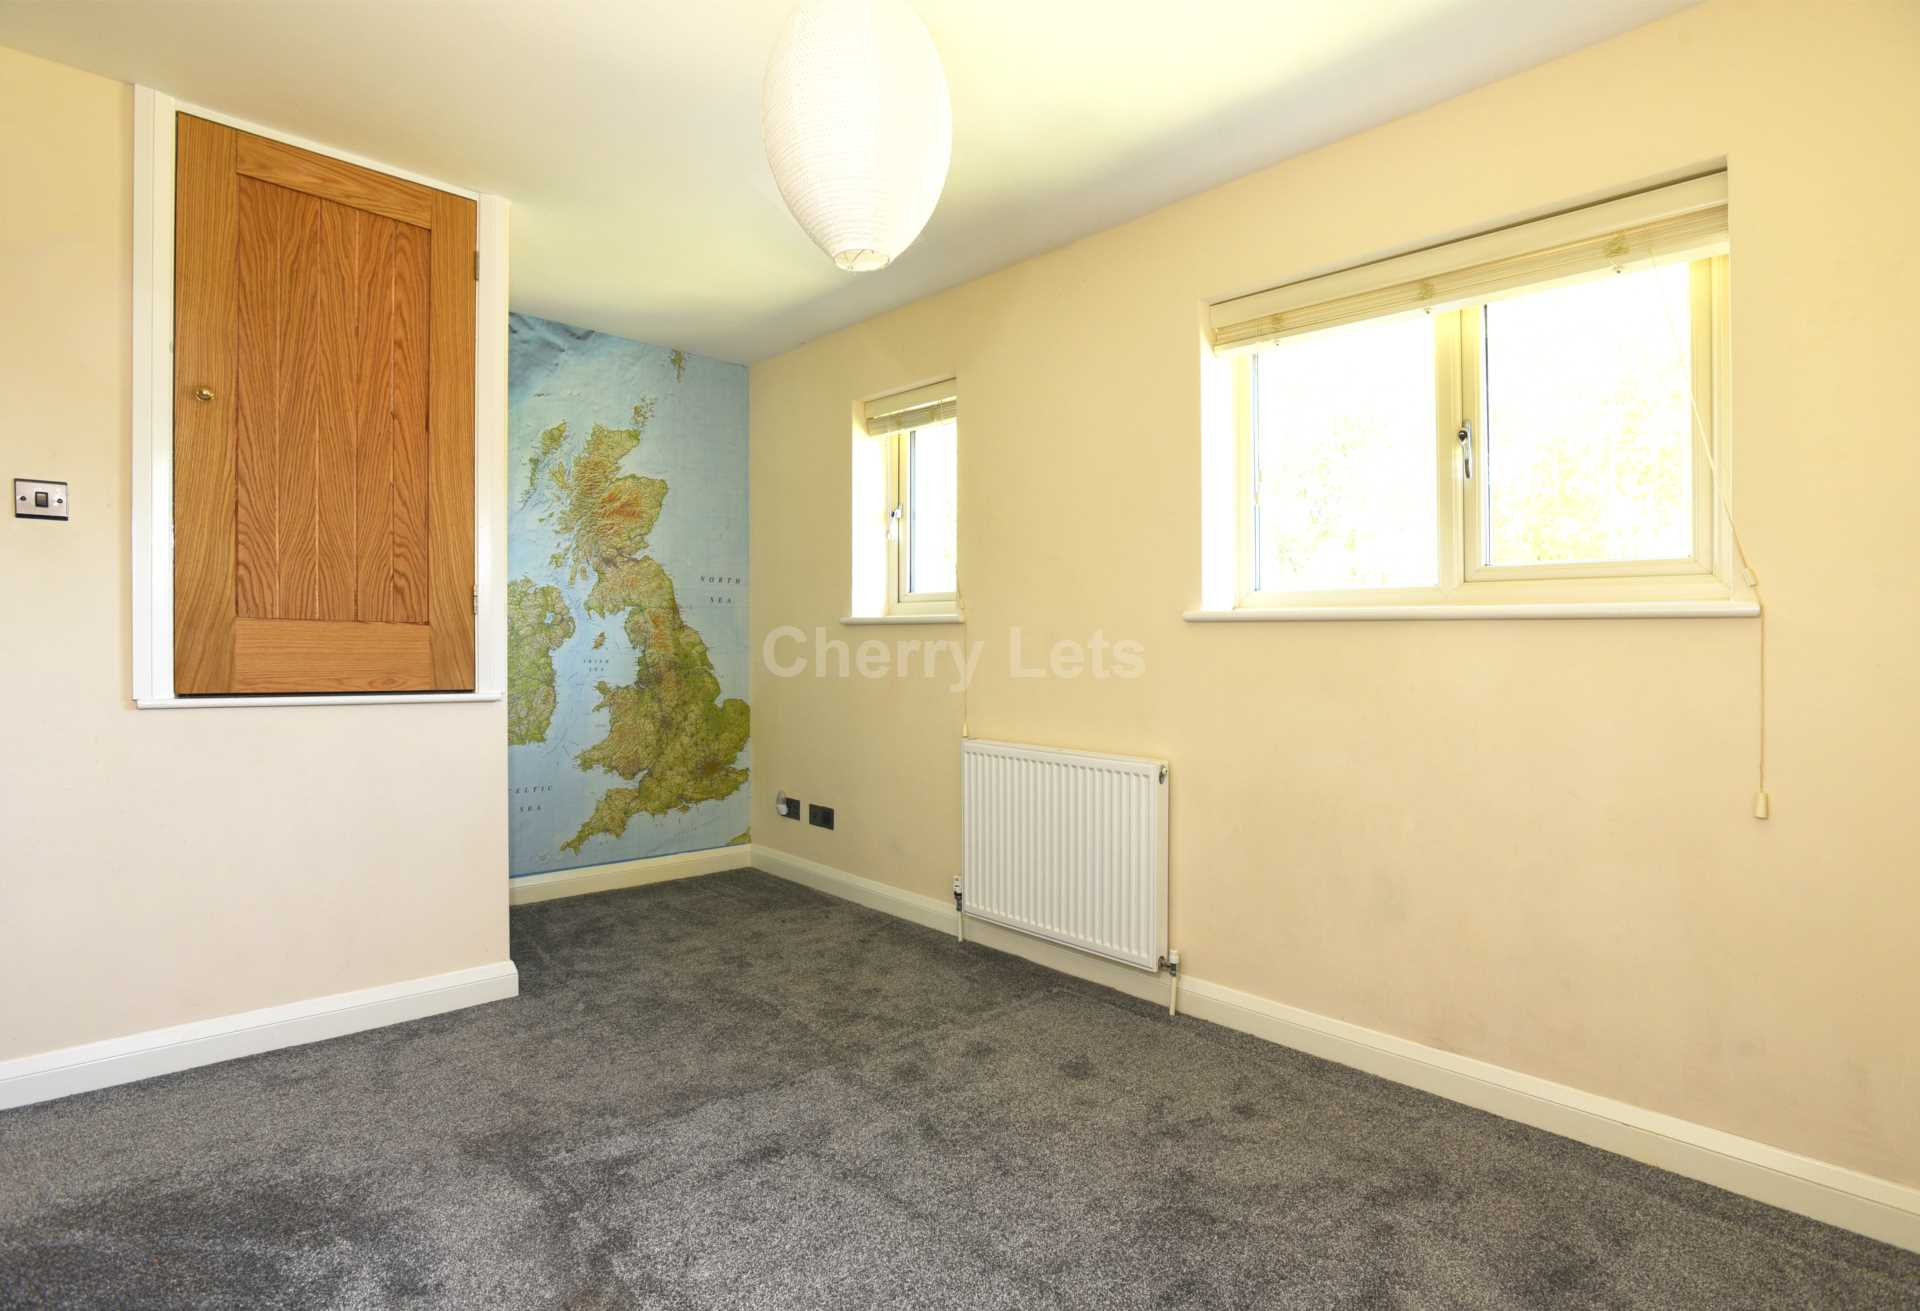 3 bed terraced house to rent in Keytes Close, Adderbury, OX17 7